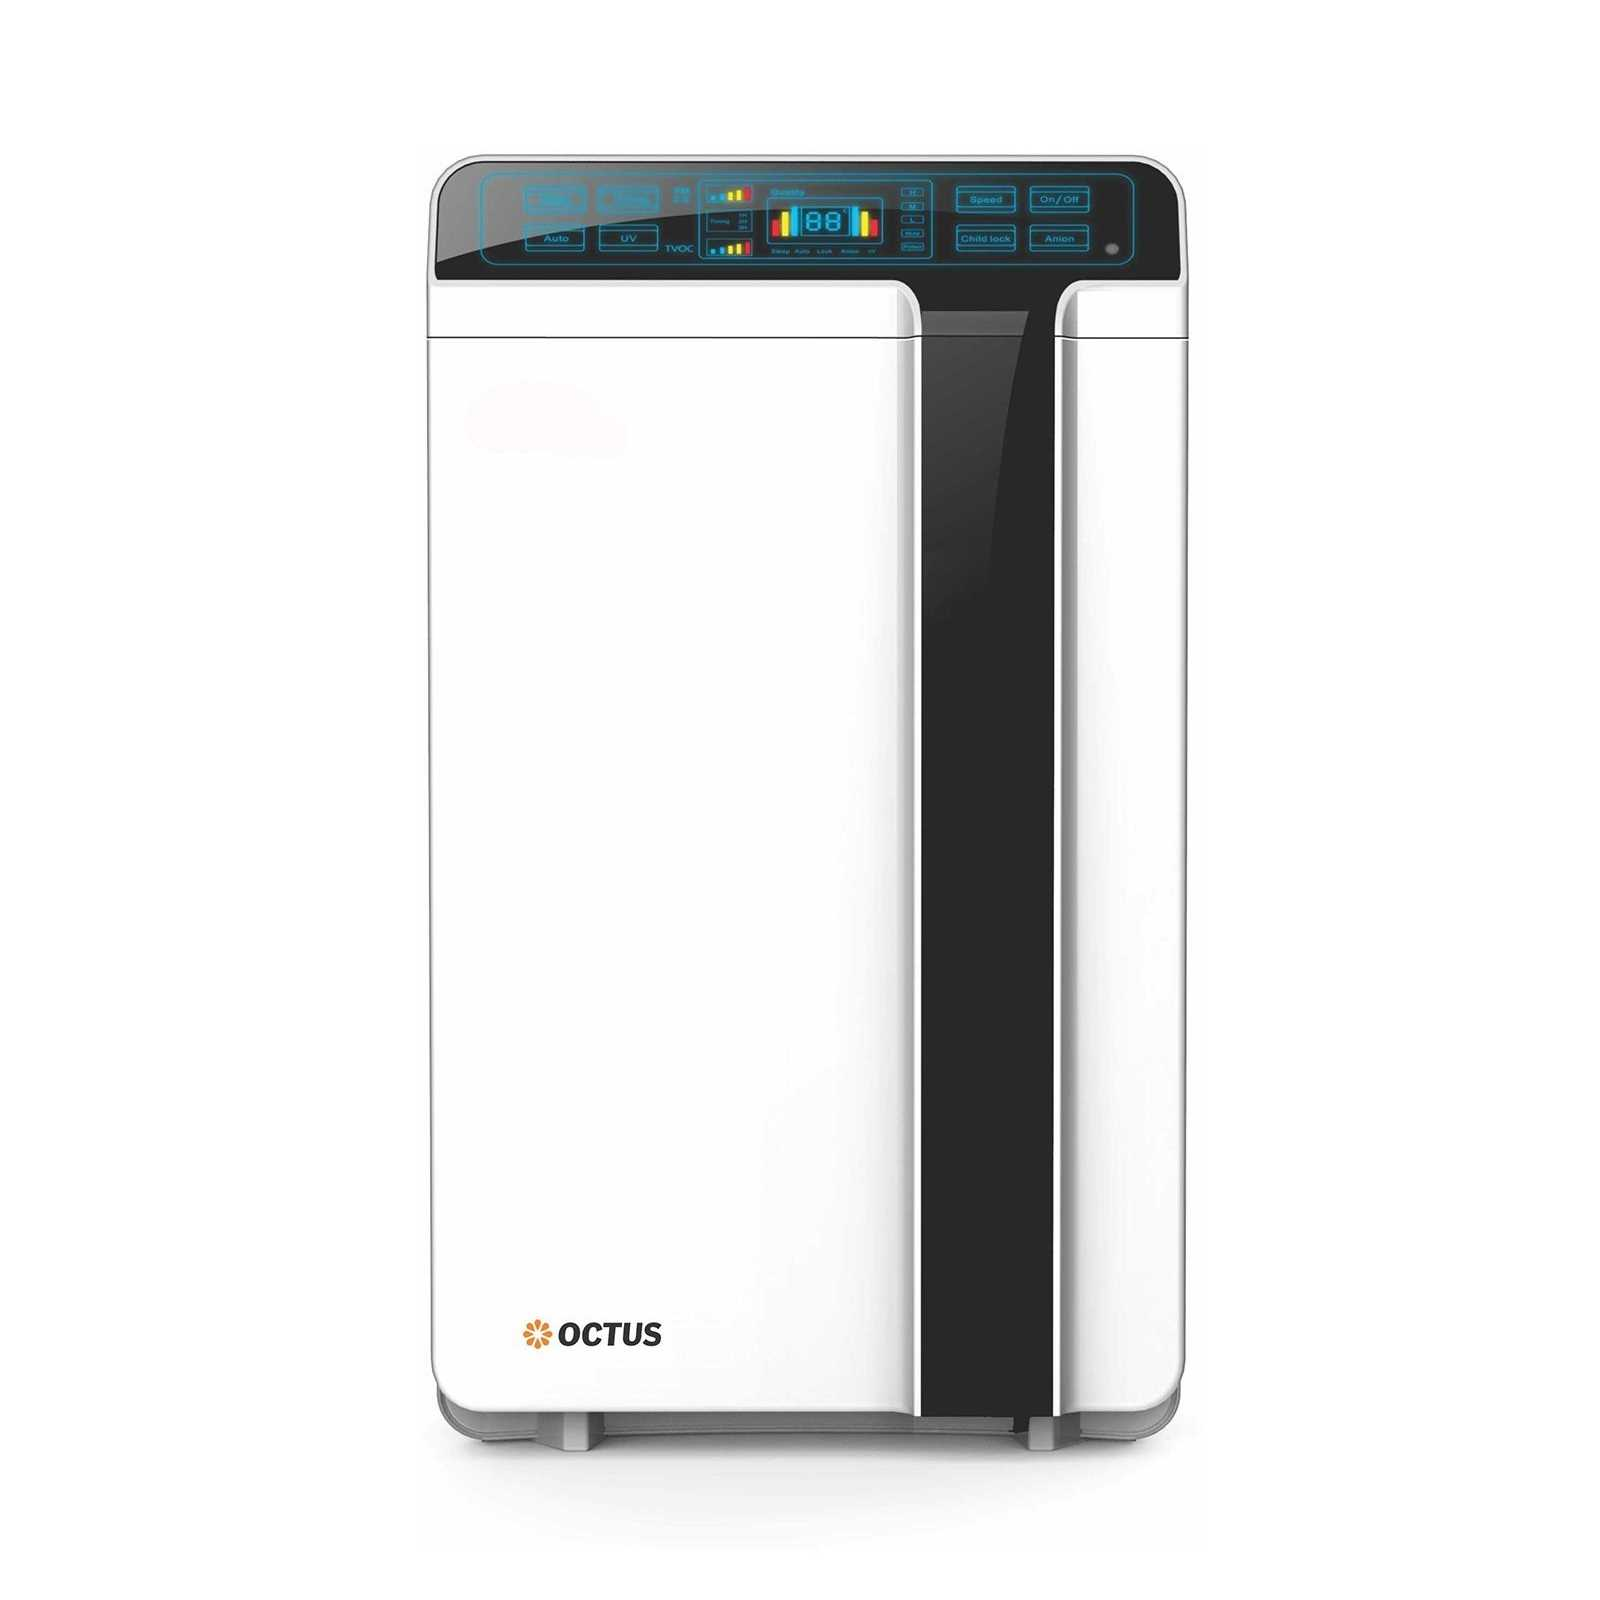 Octus Aerolife Max Air Purifier